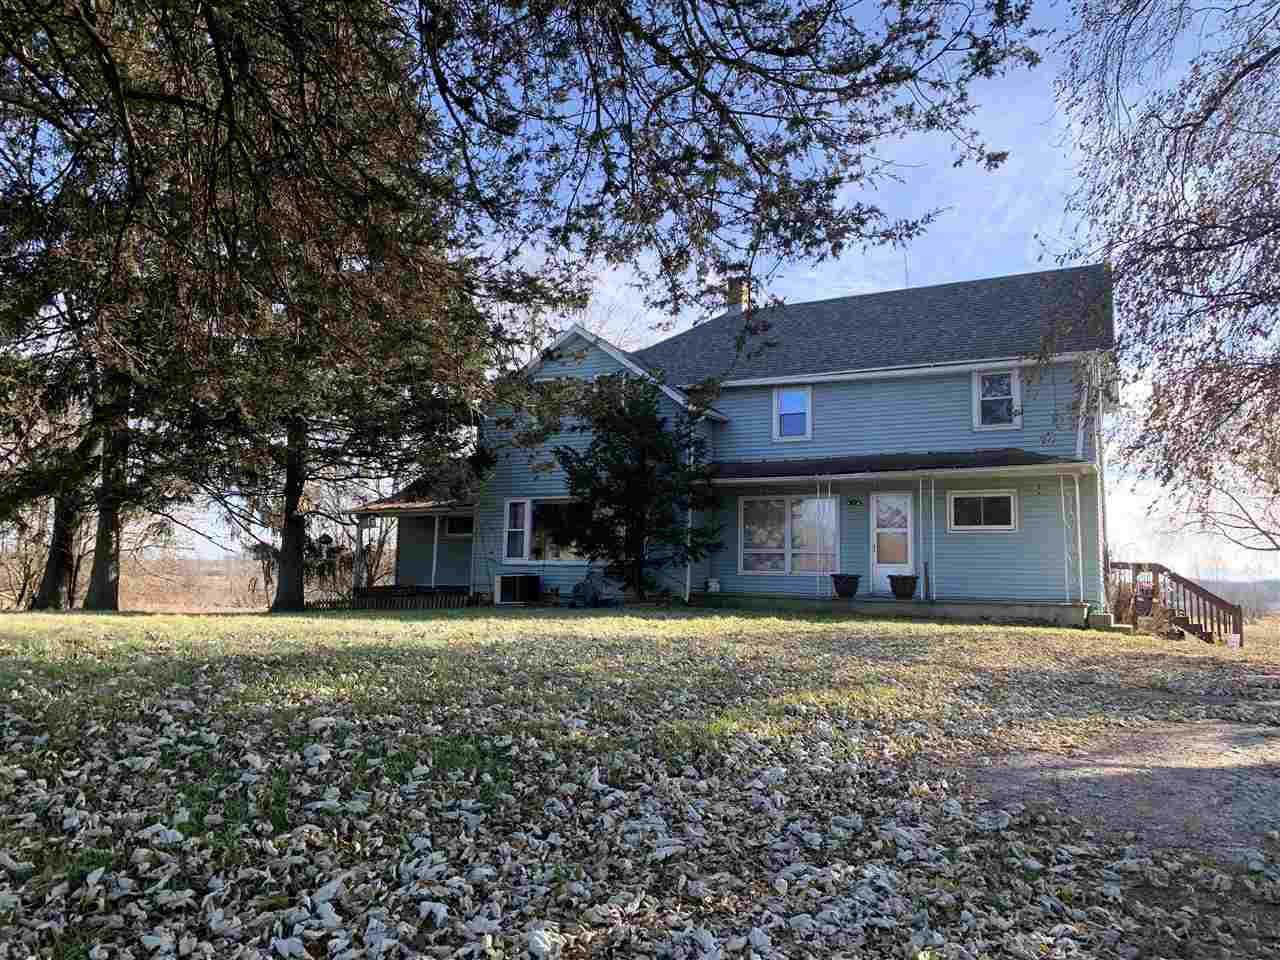 Set on 34.53 acres (14 MOL tillable), this property offers a large, partially remodeled, 4 bedroom farmhouse, 2 car garage, 2 story massive barn, 50x72 pole shed, pig barn, chicken coop with attached dog kennel, and the Batavia Creek runs diagonally across the whole property.,The home features 2 main floor bedrooms, 2 bedrooms upstairs, a completely remodeled main floor bathroom & laundry room, large remodeled kitchen, dinette area with a large picture window overlooking the pasture and creek, large dining with adjoining living room, and a walk up attic with 2 rooms for added storage.  The barn had a new roof and 2 new sides done in 2013 & a large portion of the floor was replaced this year.  Neighboring farmers rent the barn, pasture and tillable land, but can be broken.  This information is compiled from miscellaneous sources and is believed accurate but not warranted. Neither the listing Broker,Agents, Sub-Agents or property owner are responsible for the accuracy of the information. Buyers are advised to verify all information.